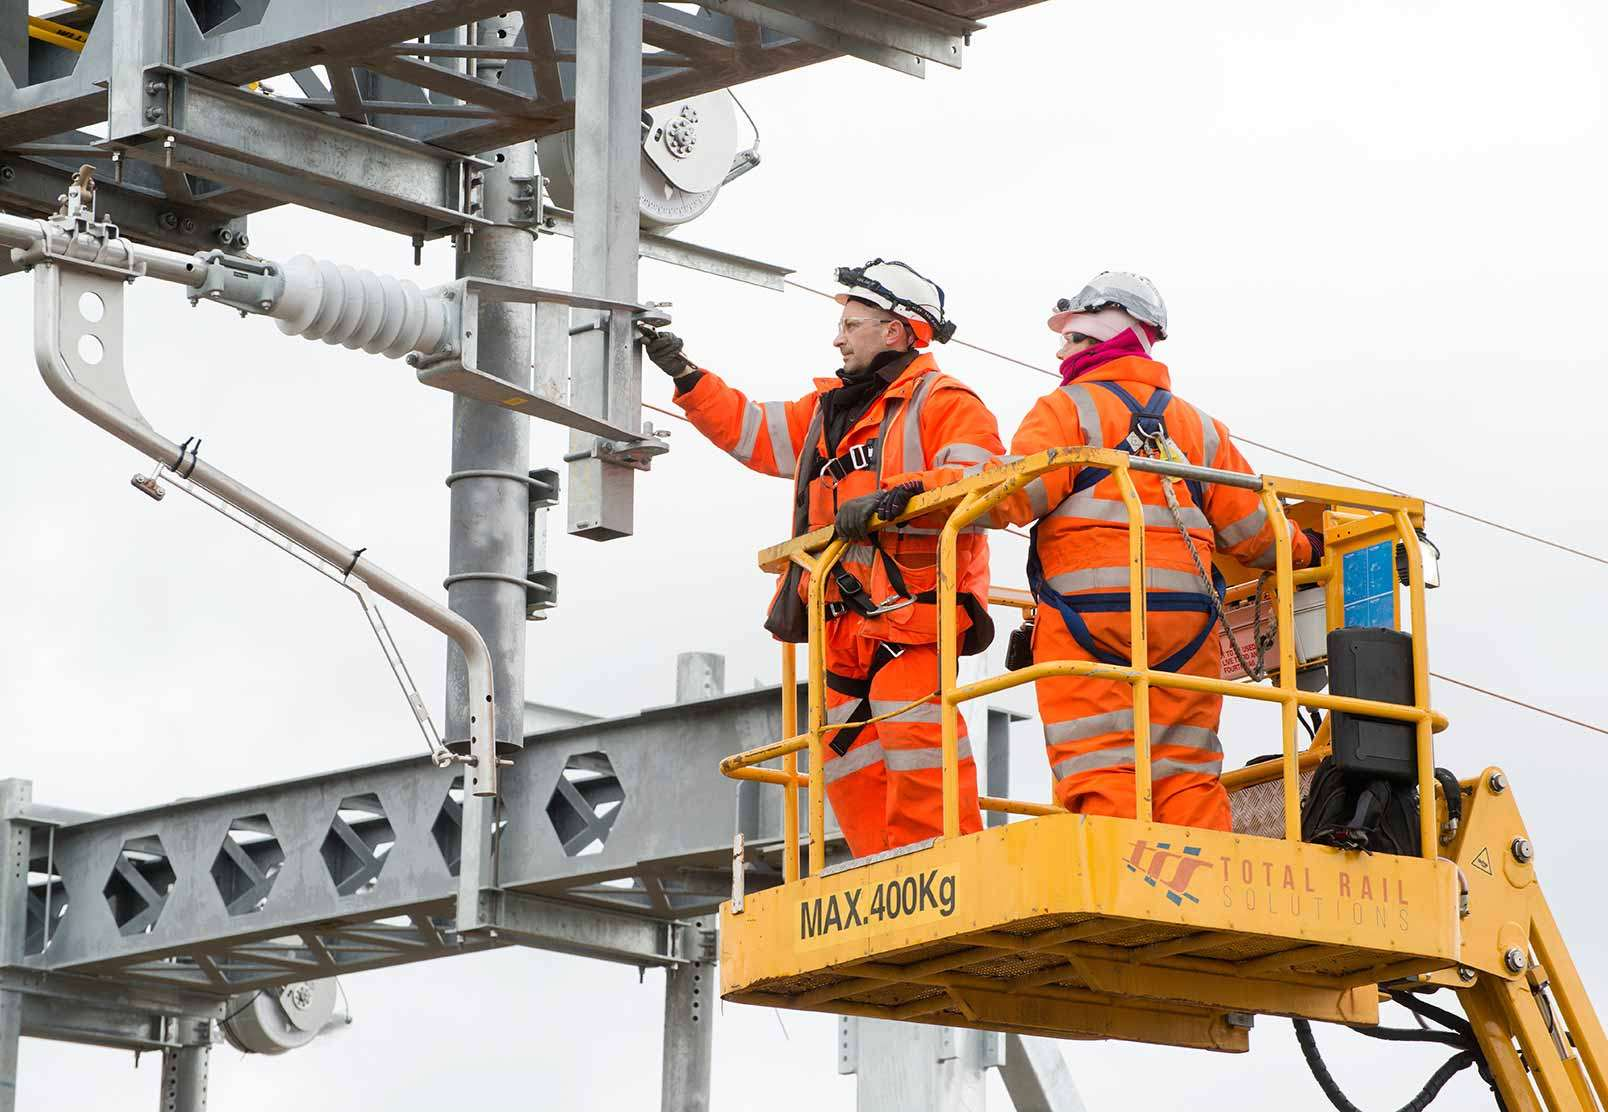 Overhead line electrification equipment